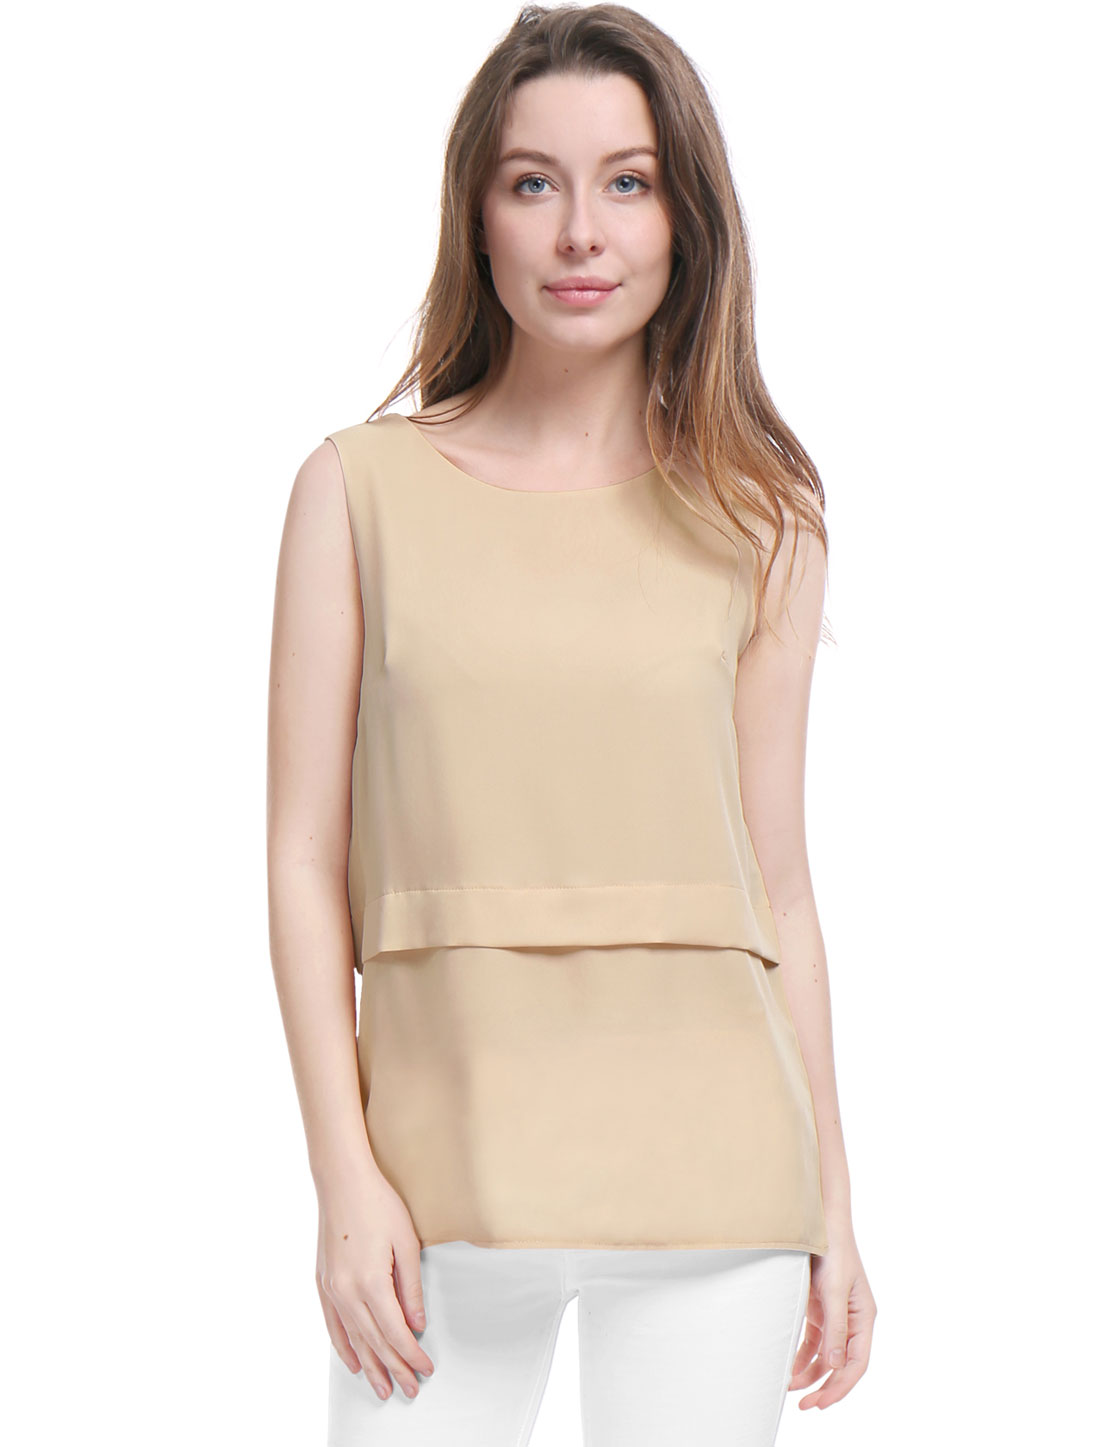 Women Chiffon Round Neckline Layered Sleeveless Top Beige M